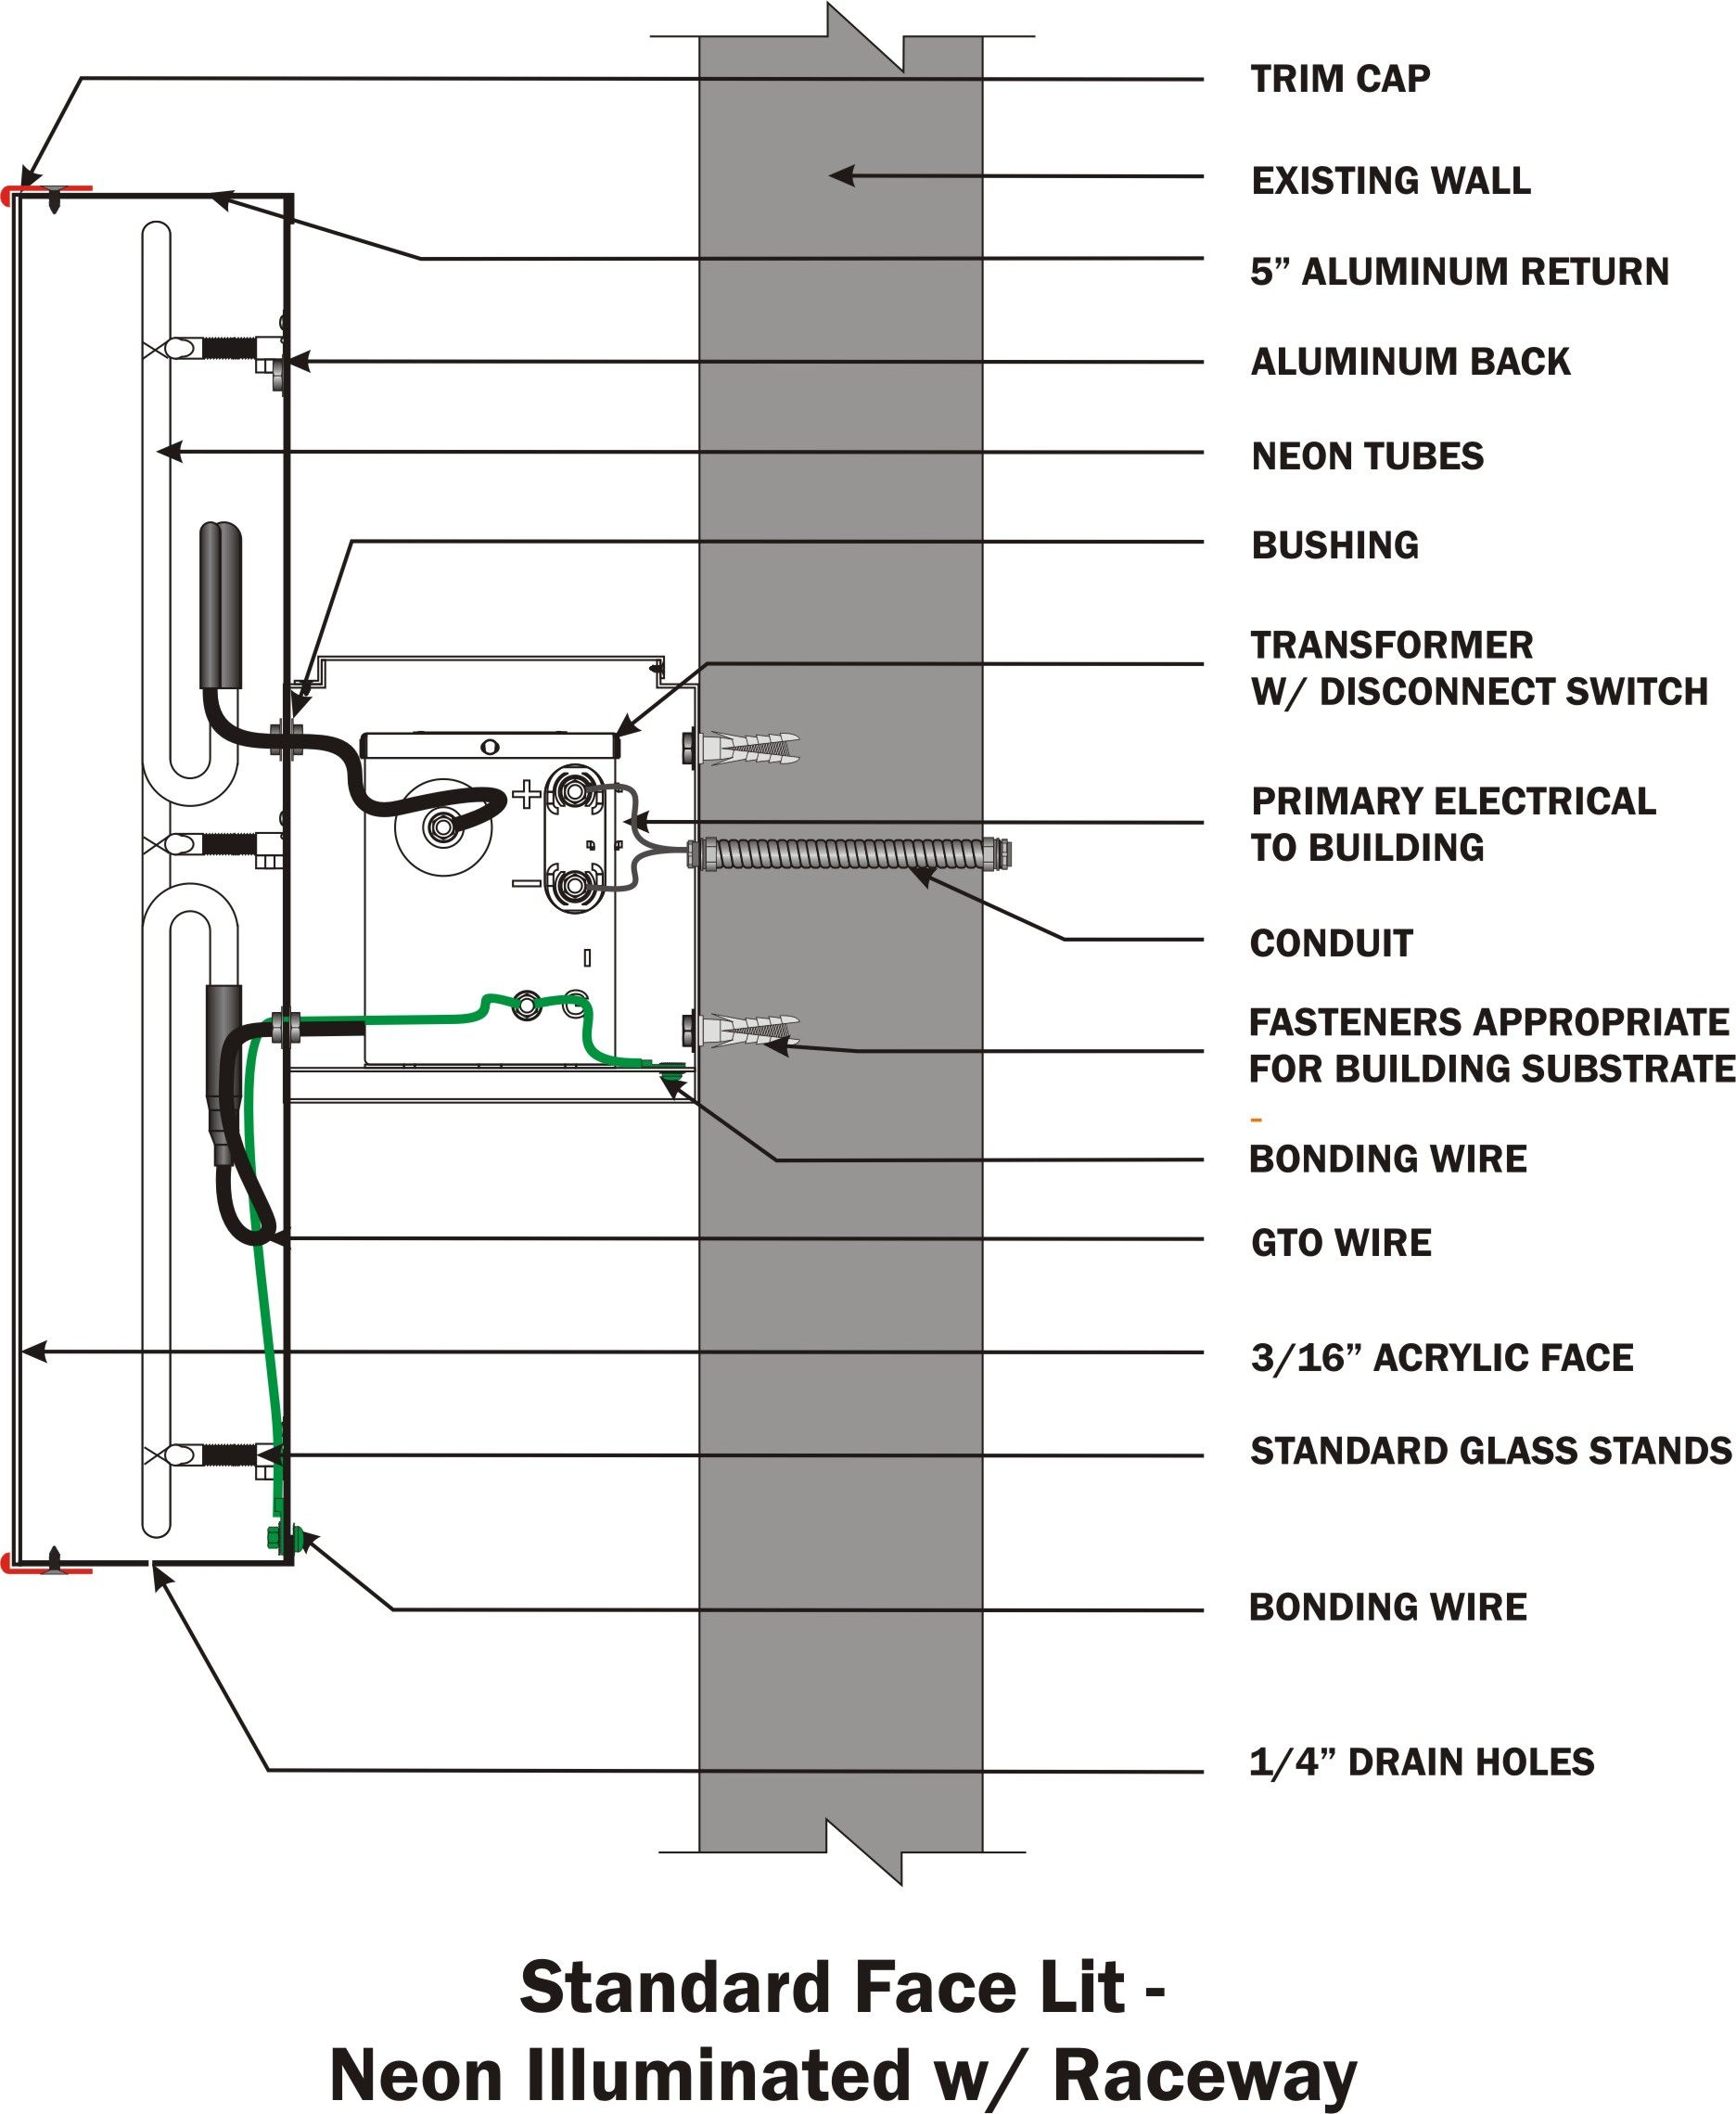 letter sign wiring diagrams home wiring diagram wiring diagram letters t p building signs diagram wiring diagram [ 1872 x 2279 Pixel ]